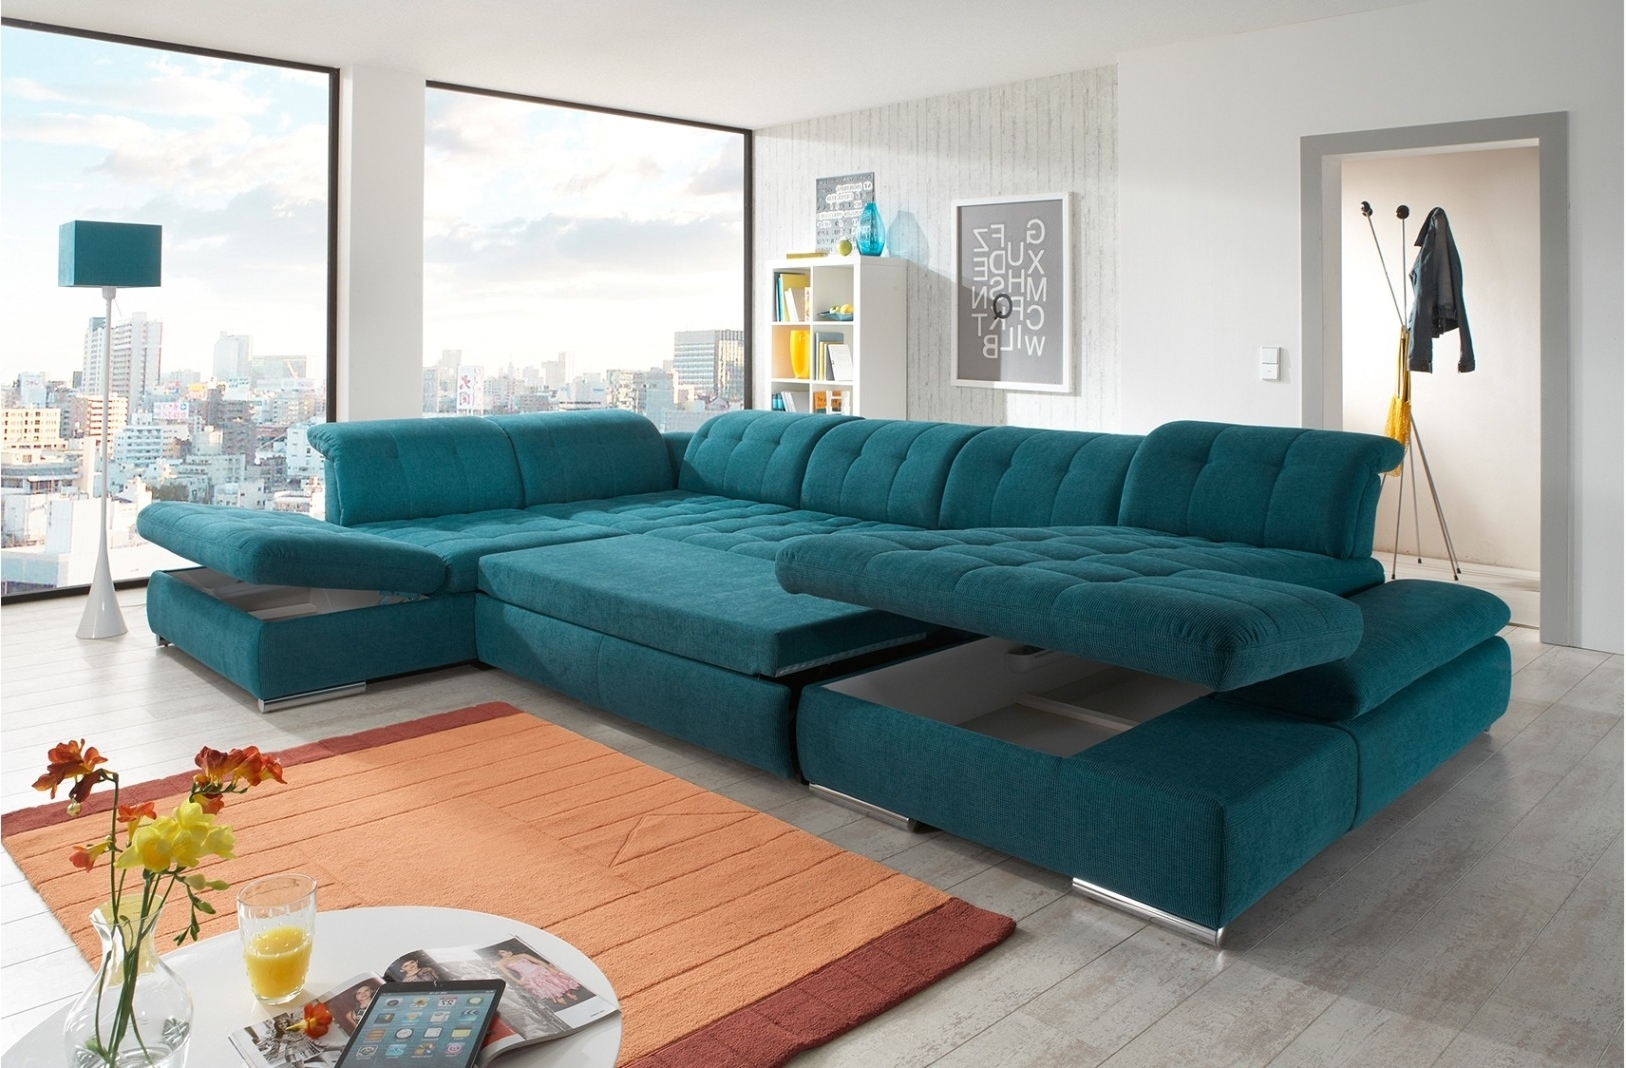 Newest Trinidad And Tobago Sectional Sofas For Alpine Sectional Sofa In Green Fabric (View 4 of 15)